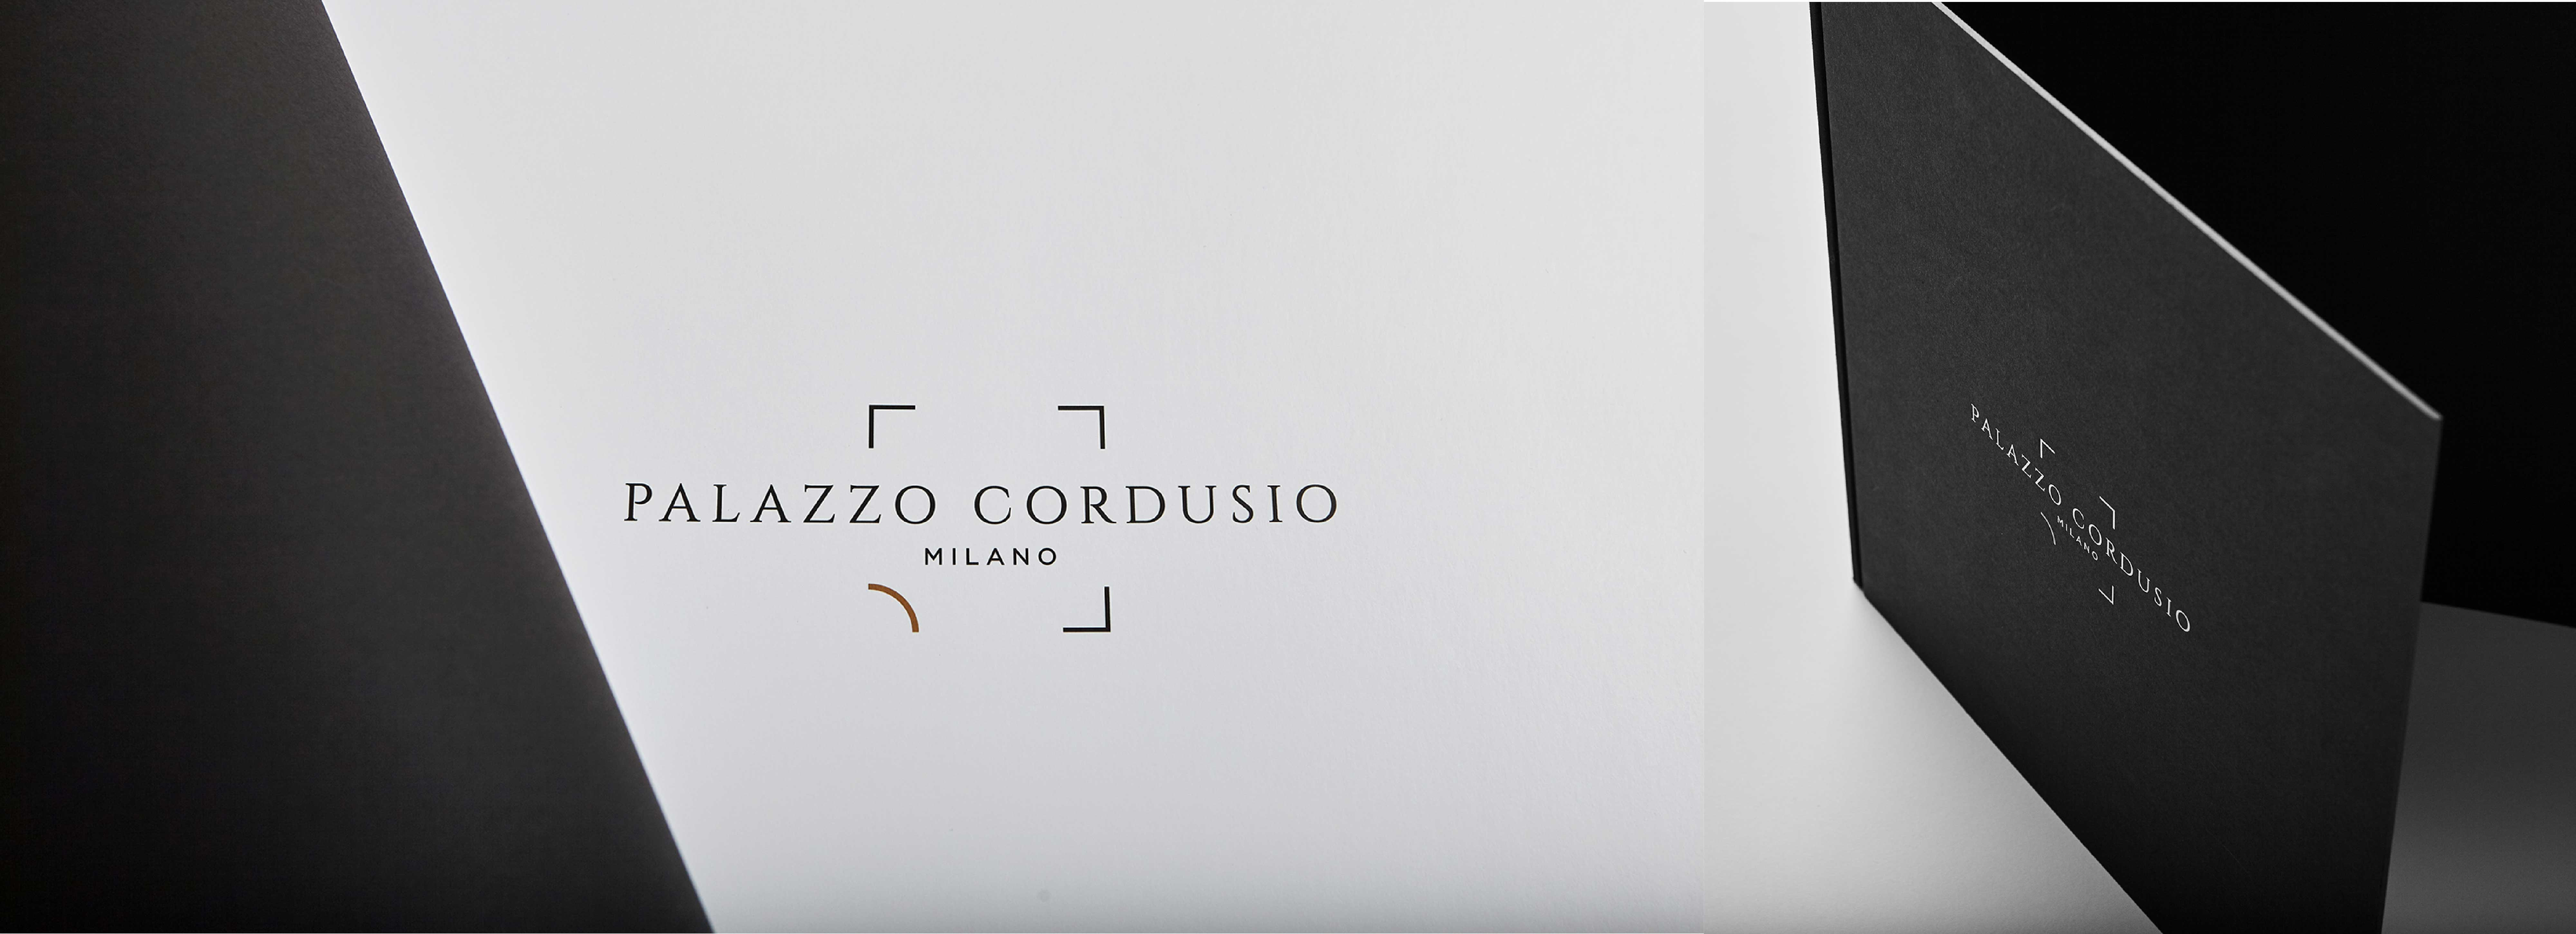 The brand identity of Palazzo Cordusio designed by Hangar Design Group